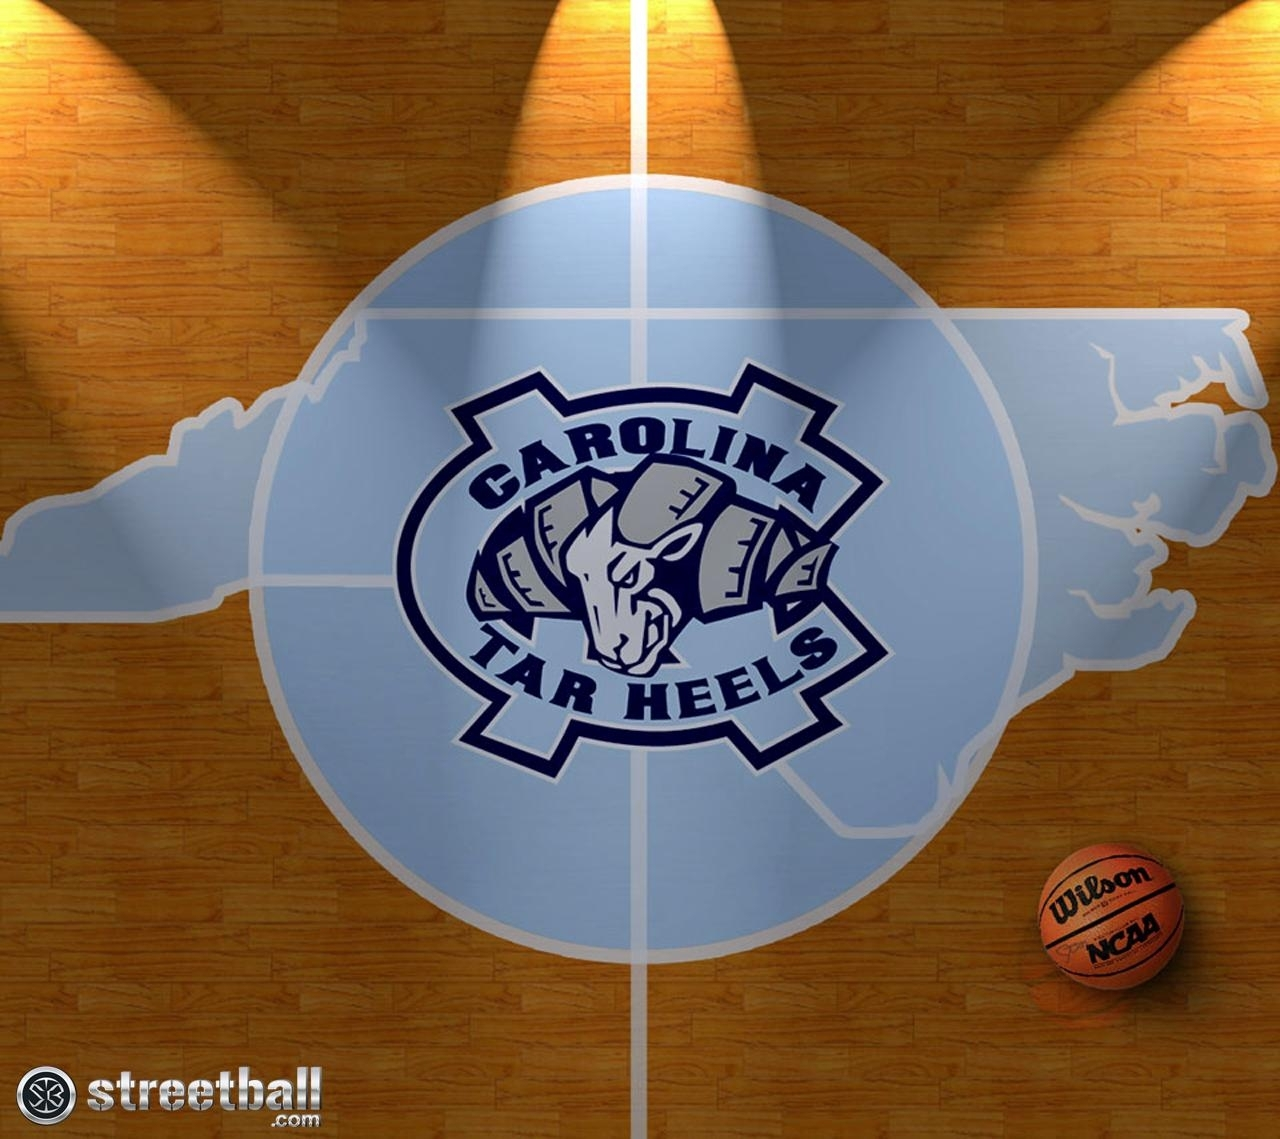 10 Most Popular Tar Heels Basketball Wallpaper FULL HD 1920×1080 For PC Background